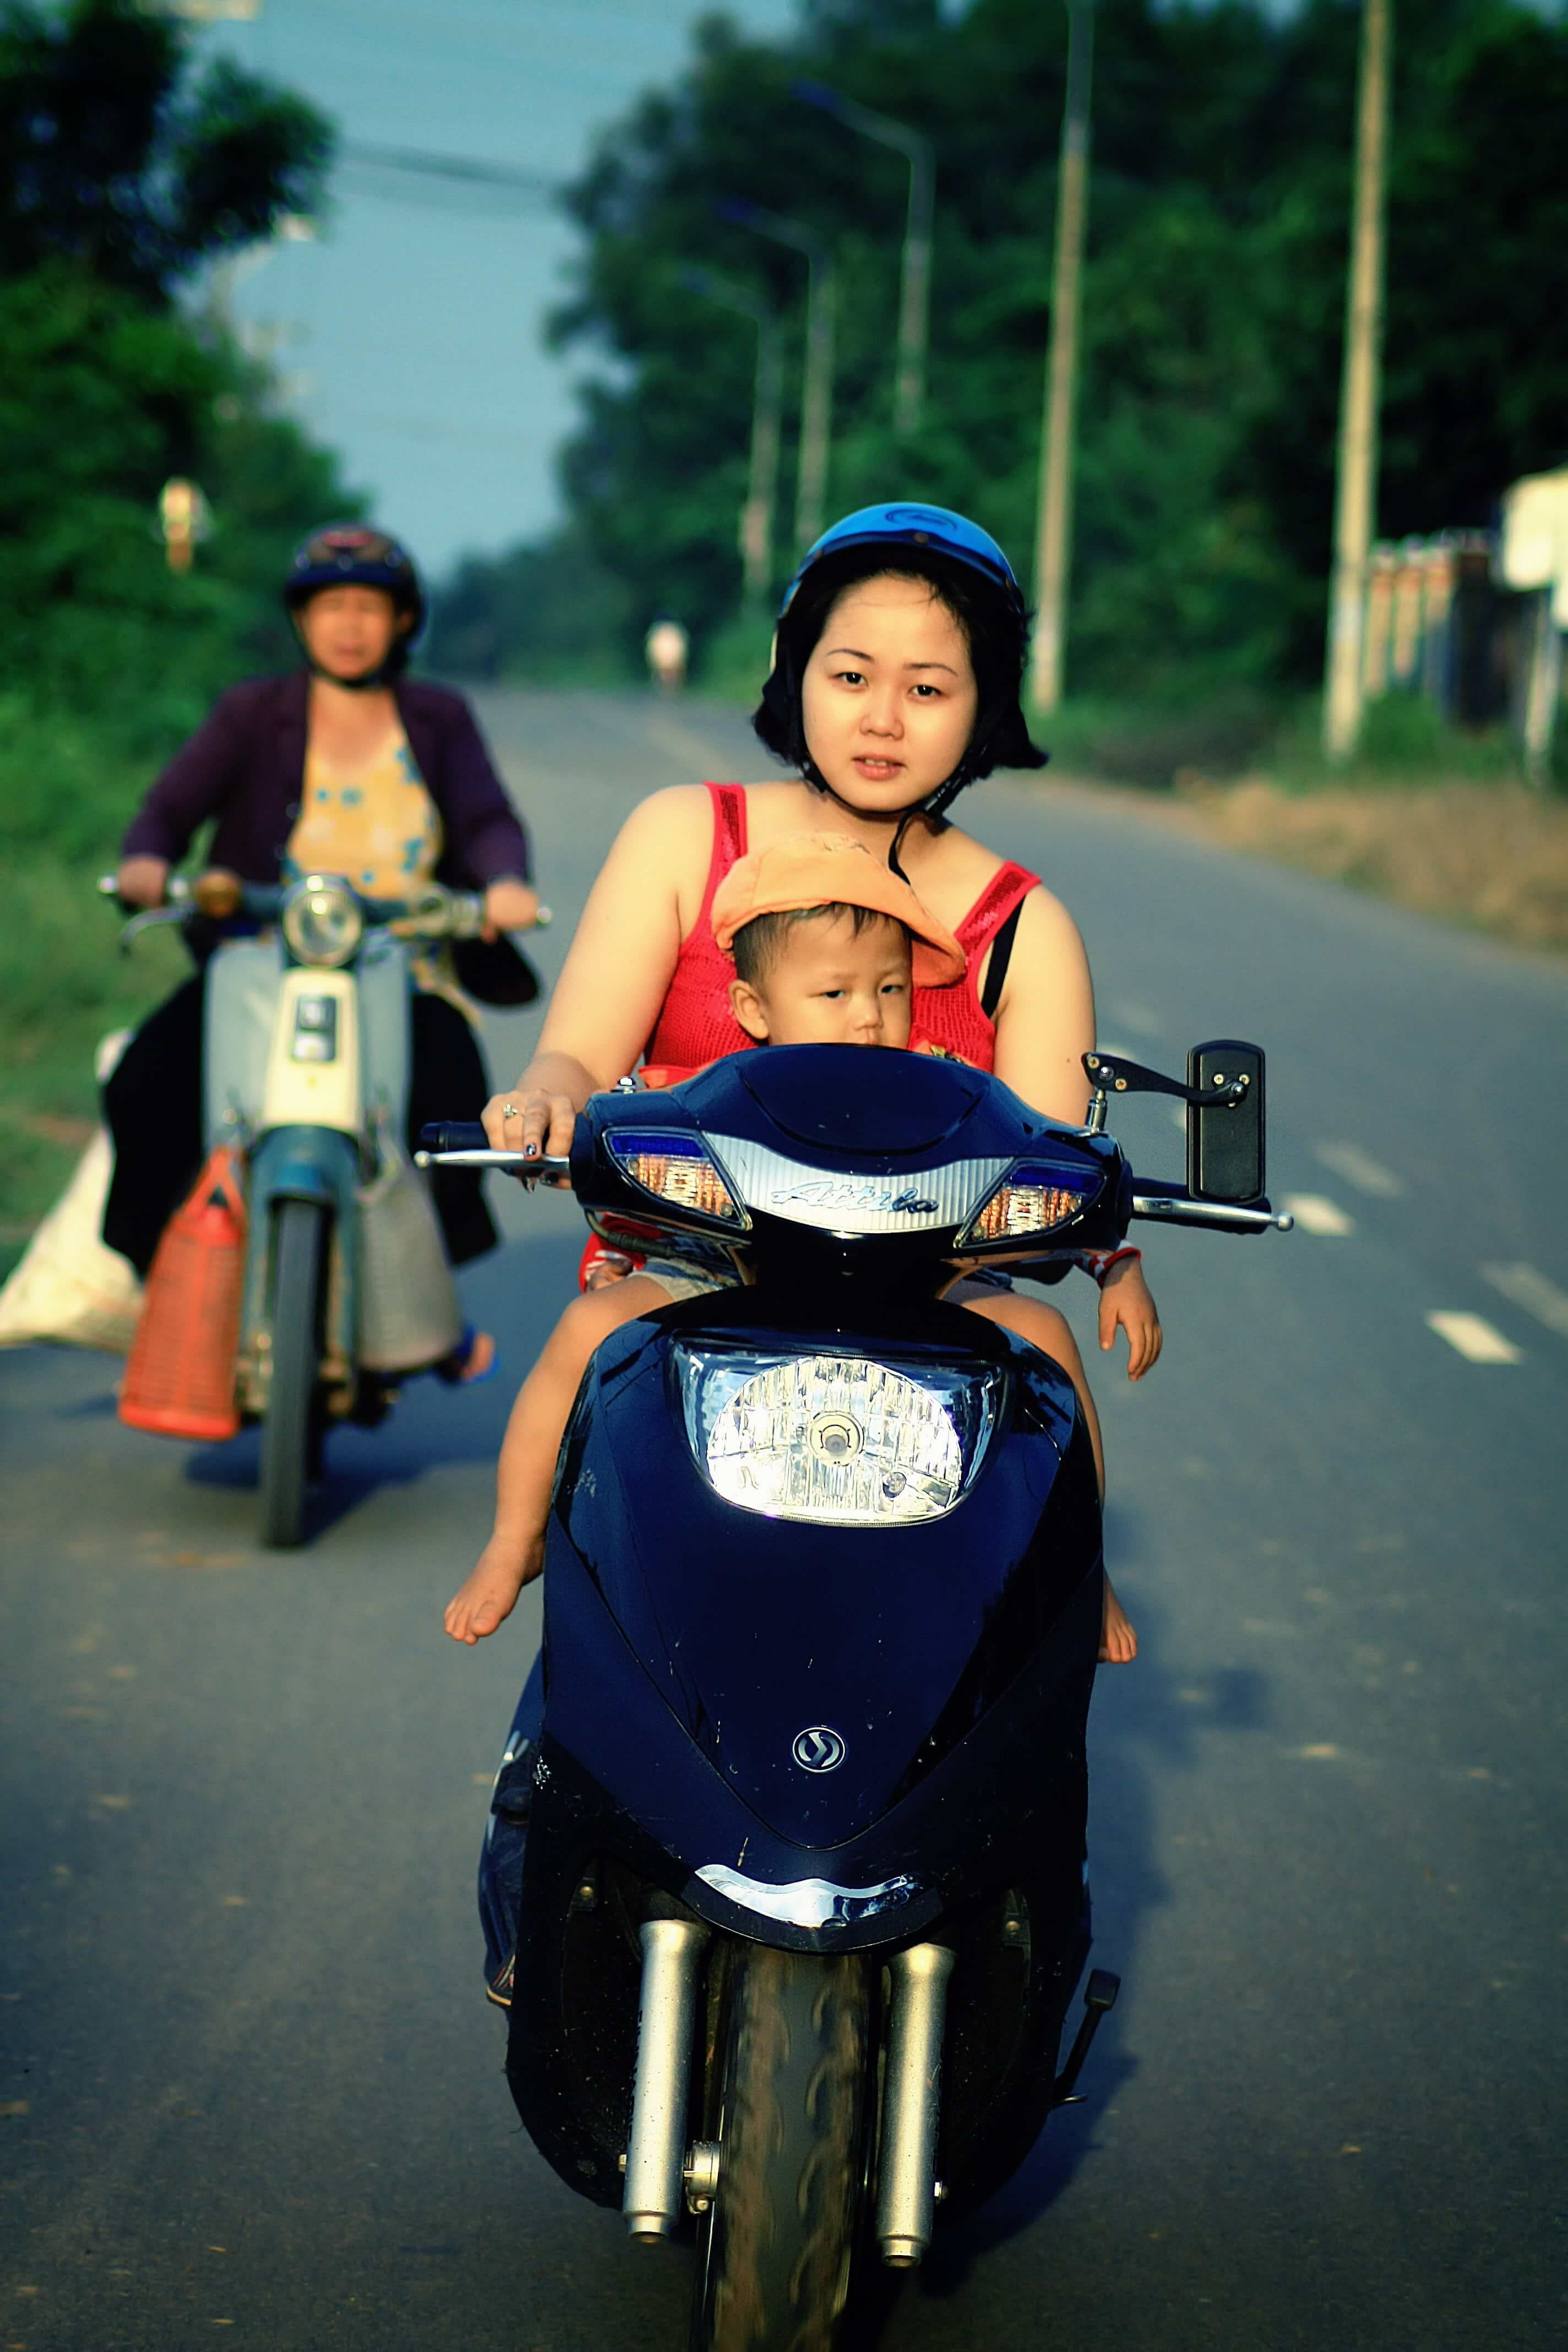 Child riding on front of a motorcycle picture.